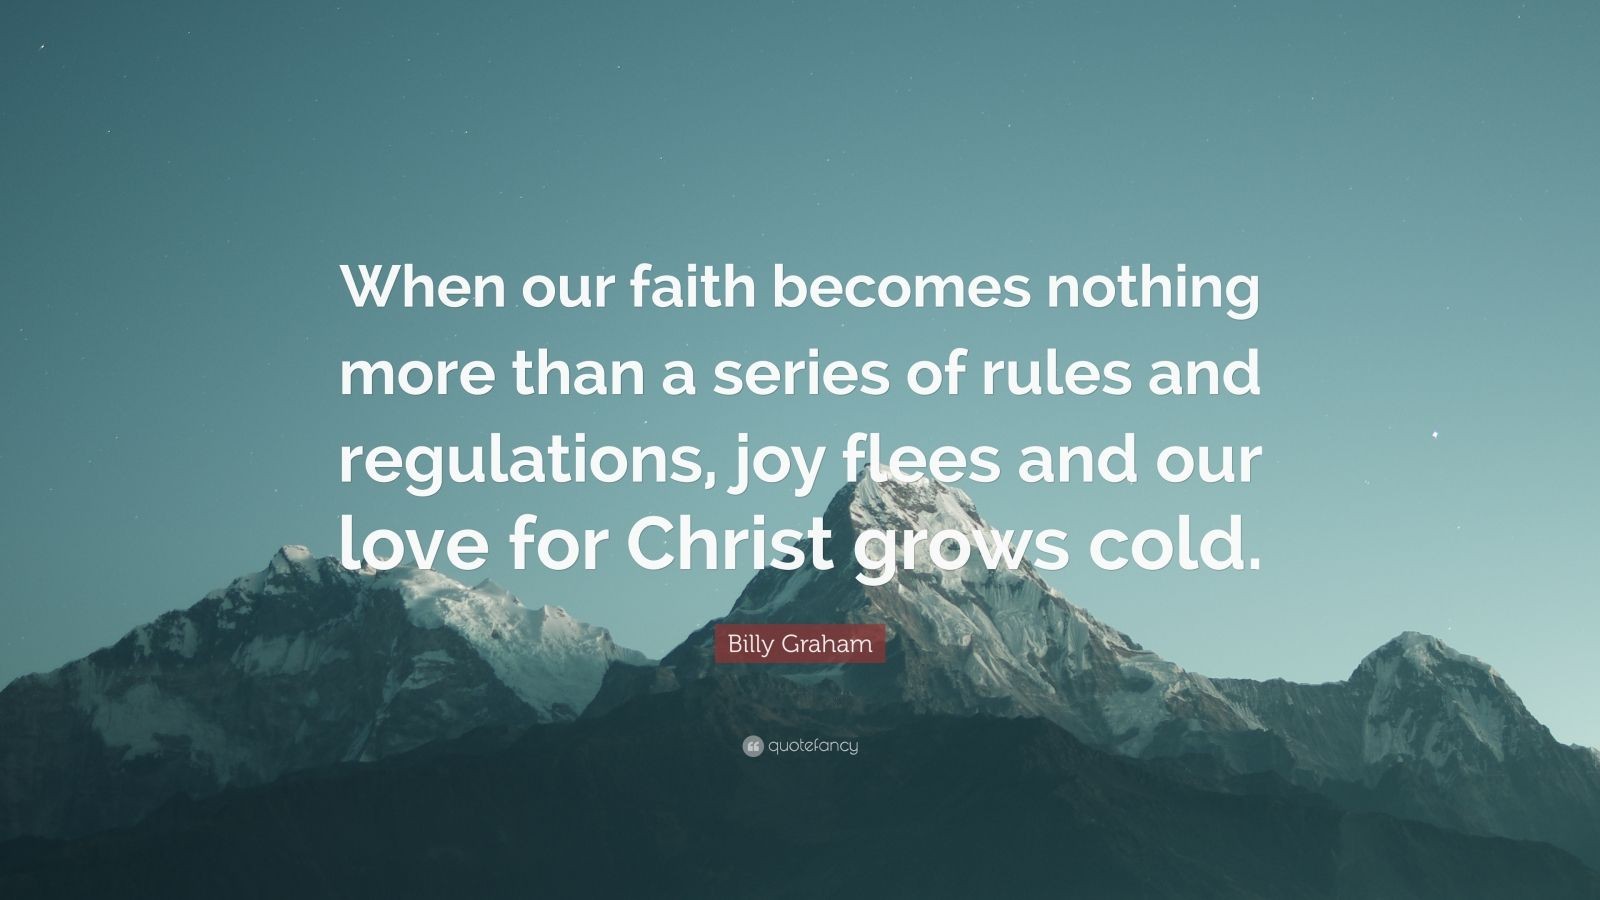 """Billy Graham Quote: """"When our faith becomes nothing more than a series of rules and regulations, joy flees and our love for Christ grows cold."""""""